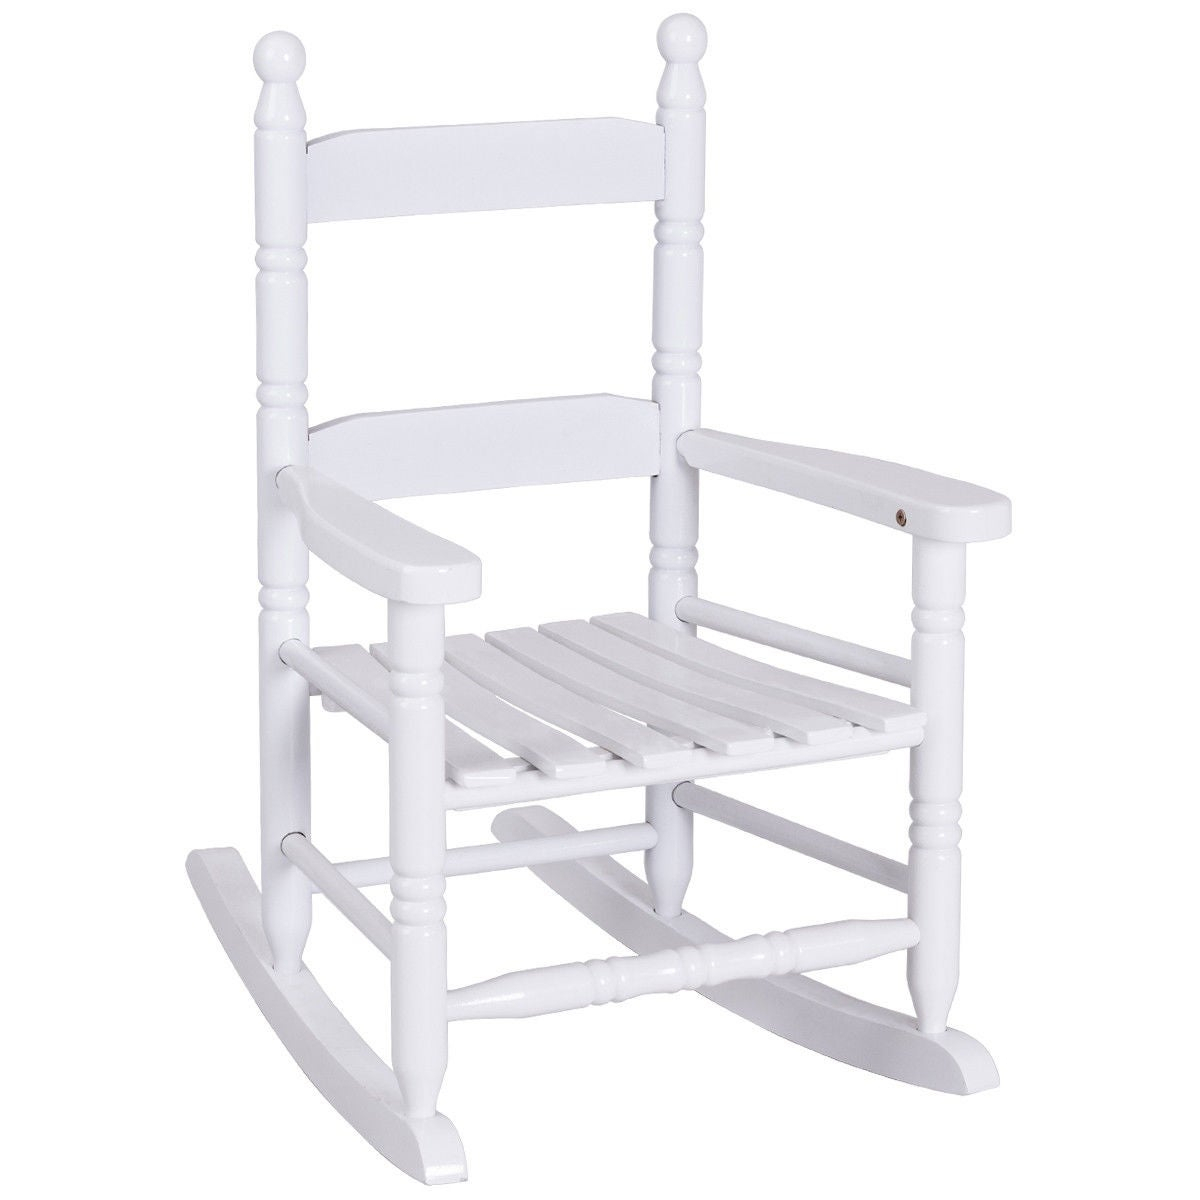 Costway Classic White Wooden Children Kids Rocking Chair Slat Back Furniture Pertaining To Tobacco Brown Kids Rocking Chairs (View 20 of 20)